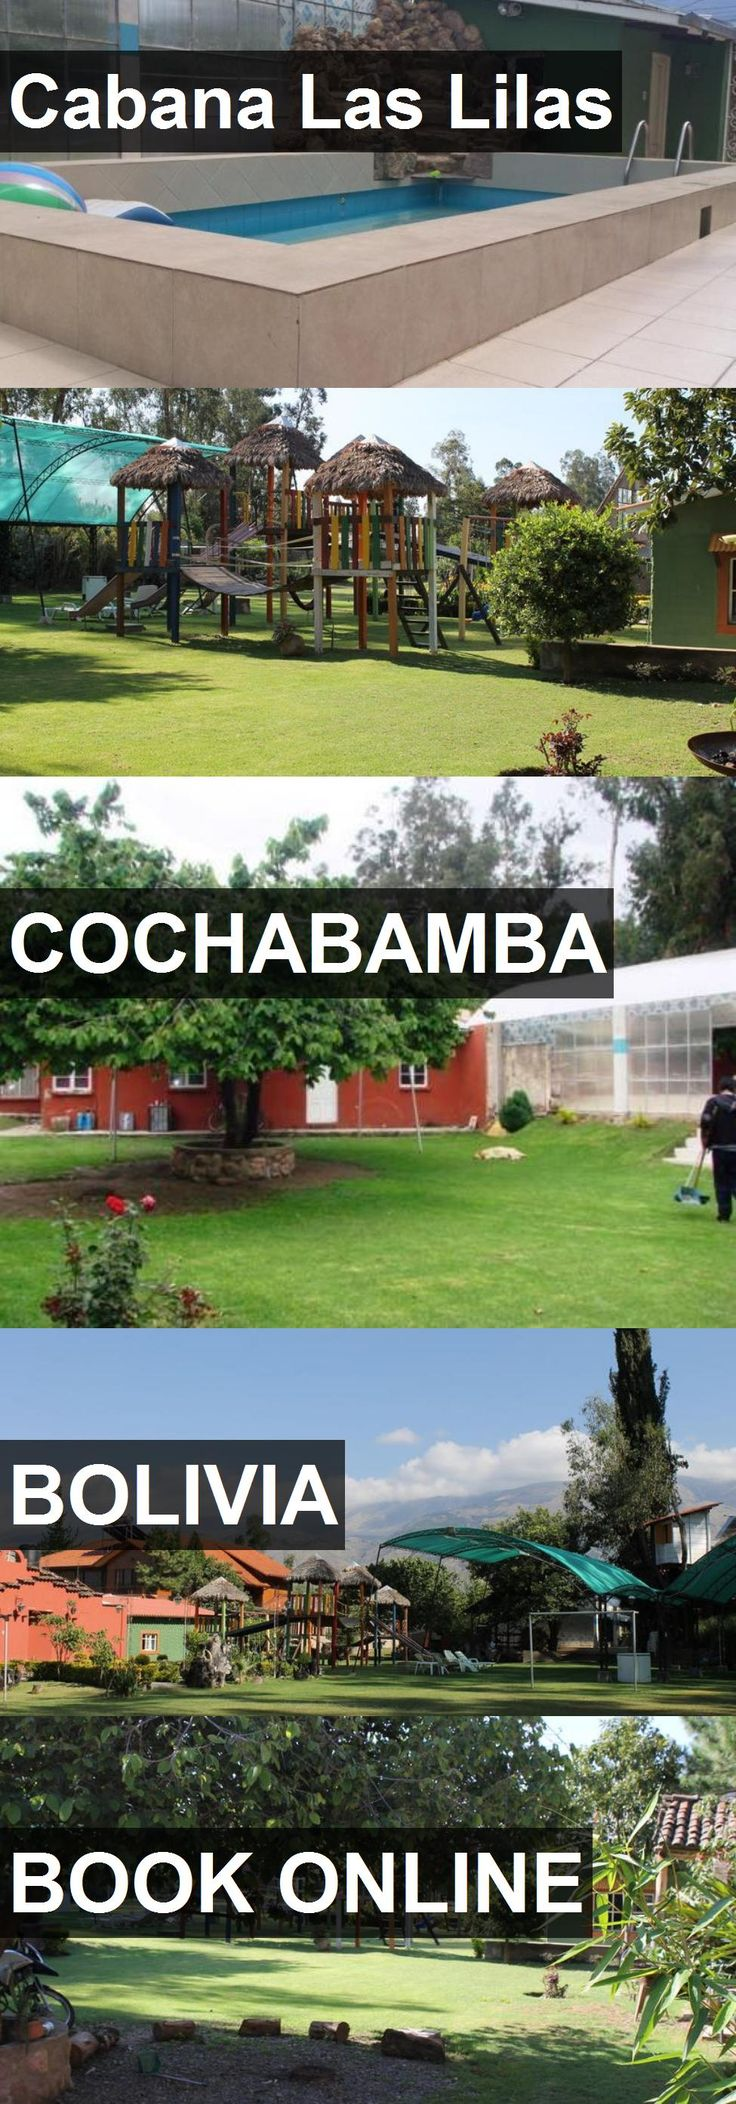 Hotel Cabana Las Lilas in Cochabamba, Bolivia. For more information, photos, reviews and best prices please follow the link. #Bolivia #Cochabamba #CabanaLasLilas #hotel #travel #vacation